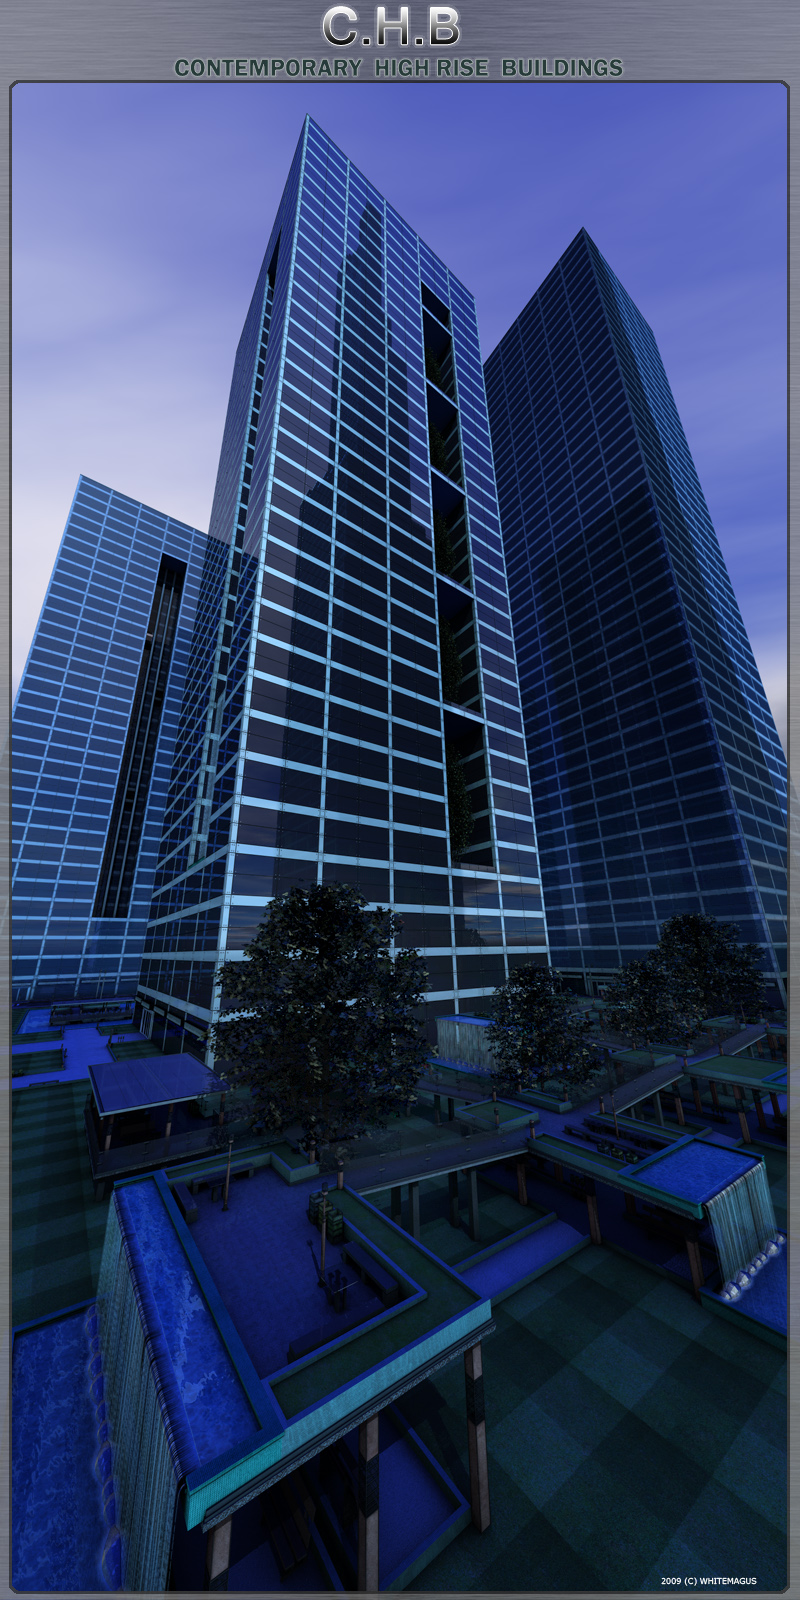 C.H.B. Contemporary  High Rise  Buildings  (Cinema4d version)